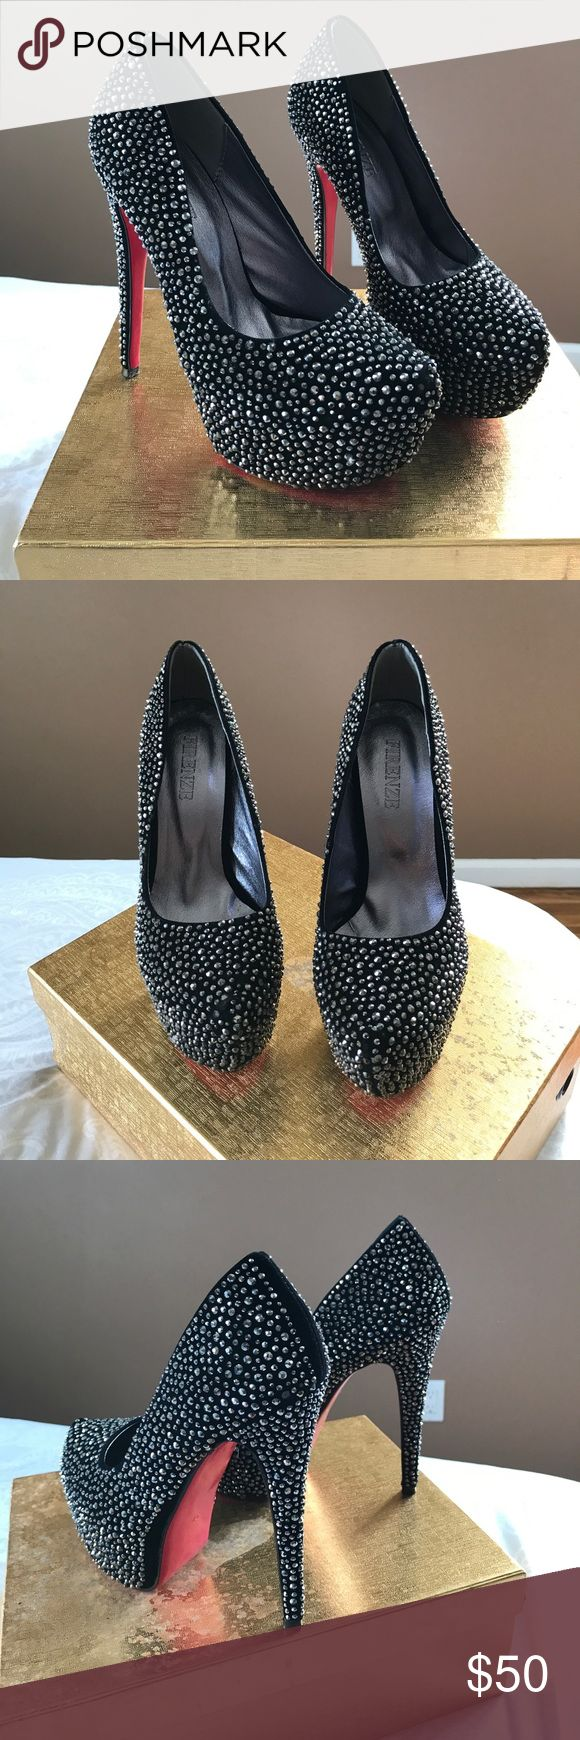 Black suede silver rhinestone heels Black suede silver rhinestone heels. Size 37. Two rhinestones missing as shown in picture, not very noticeable. Shoes Heels